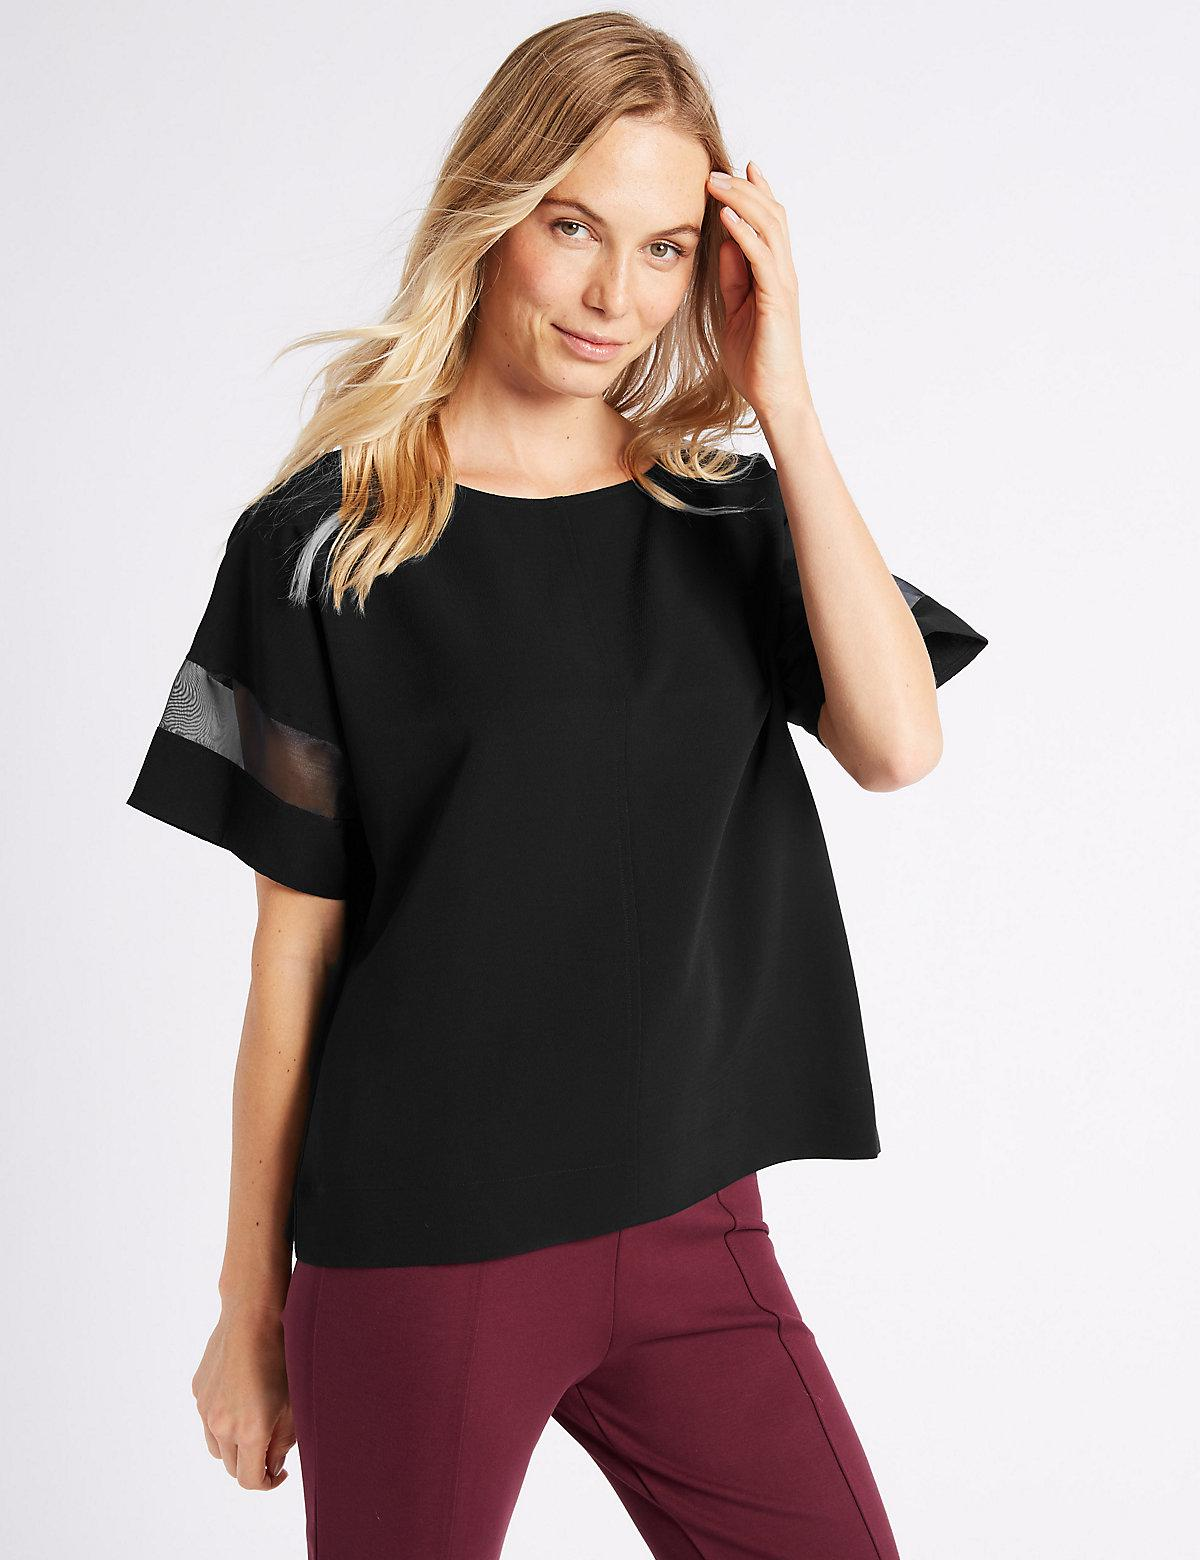 Brand New Unisex Cheap Online Prices Cheap Online Marks & Spencer Round Neck Half Sleeve Kimono Shell Top - - 6 Latest Discount Cheap Sale Ebay Discount From China JvSVN